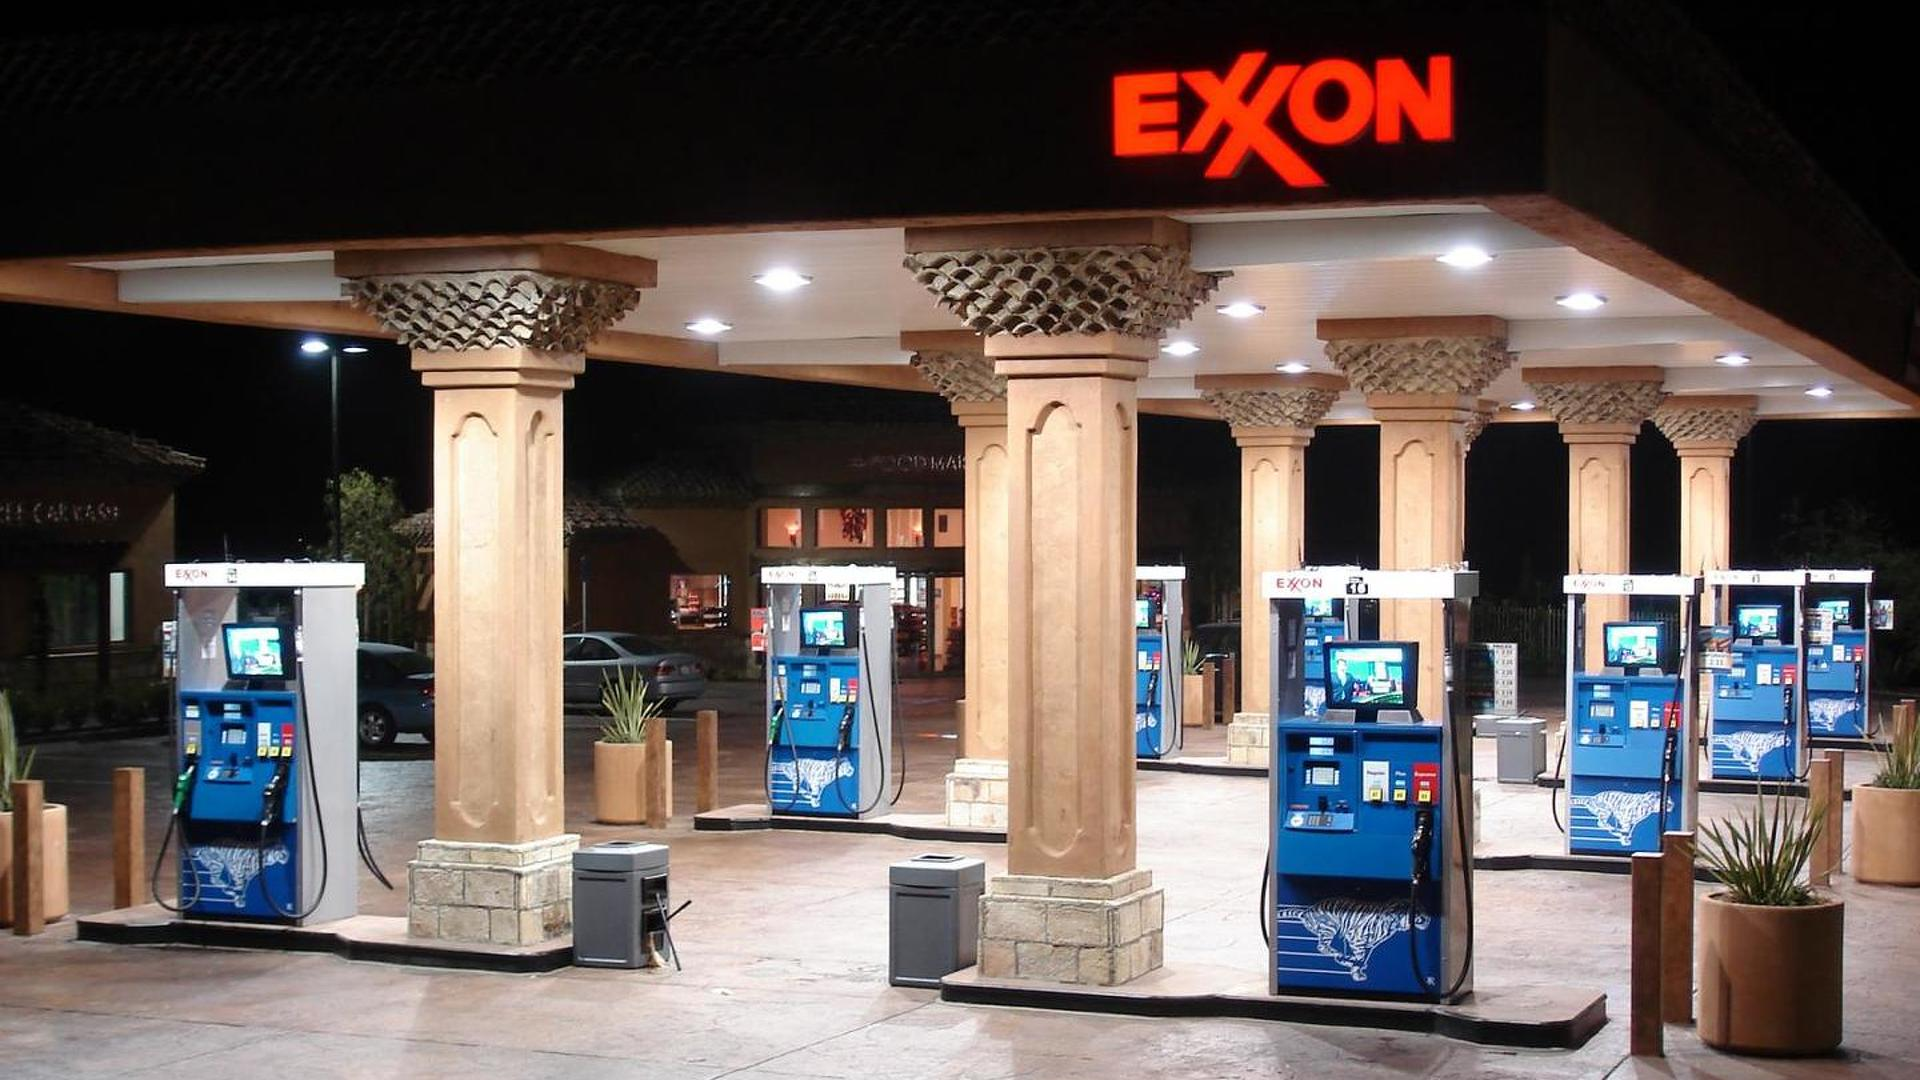 EPA wants cleaner gasoline with lower sulfur content